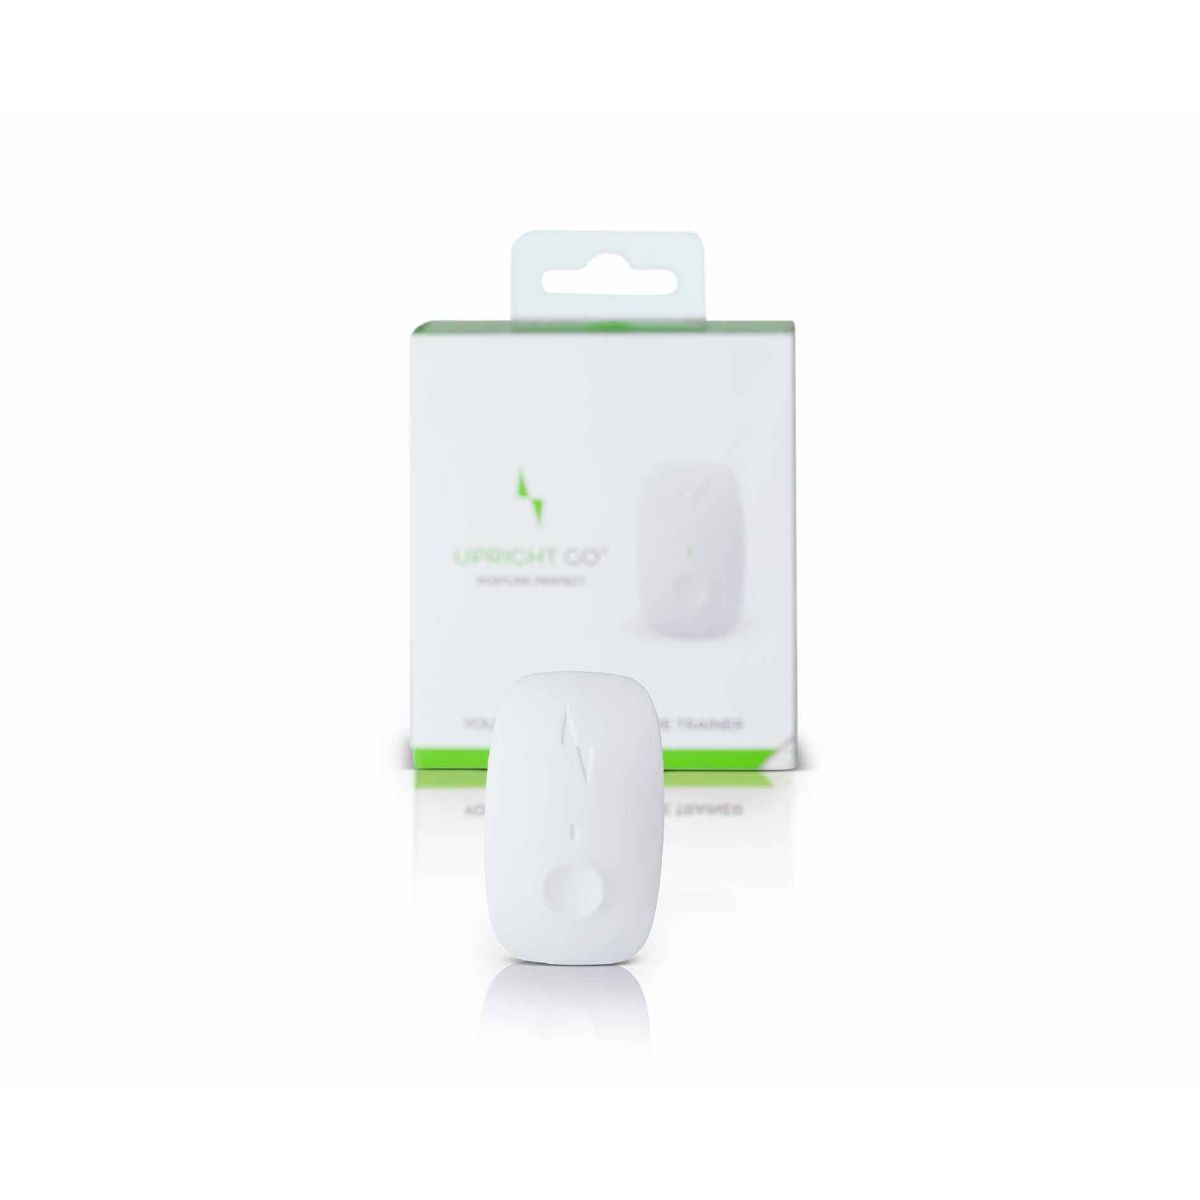 Upright Go Personal Posture Trainer